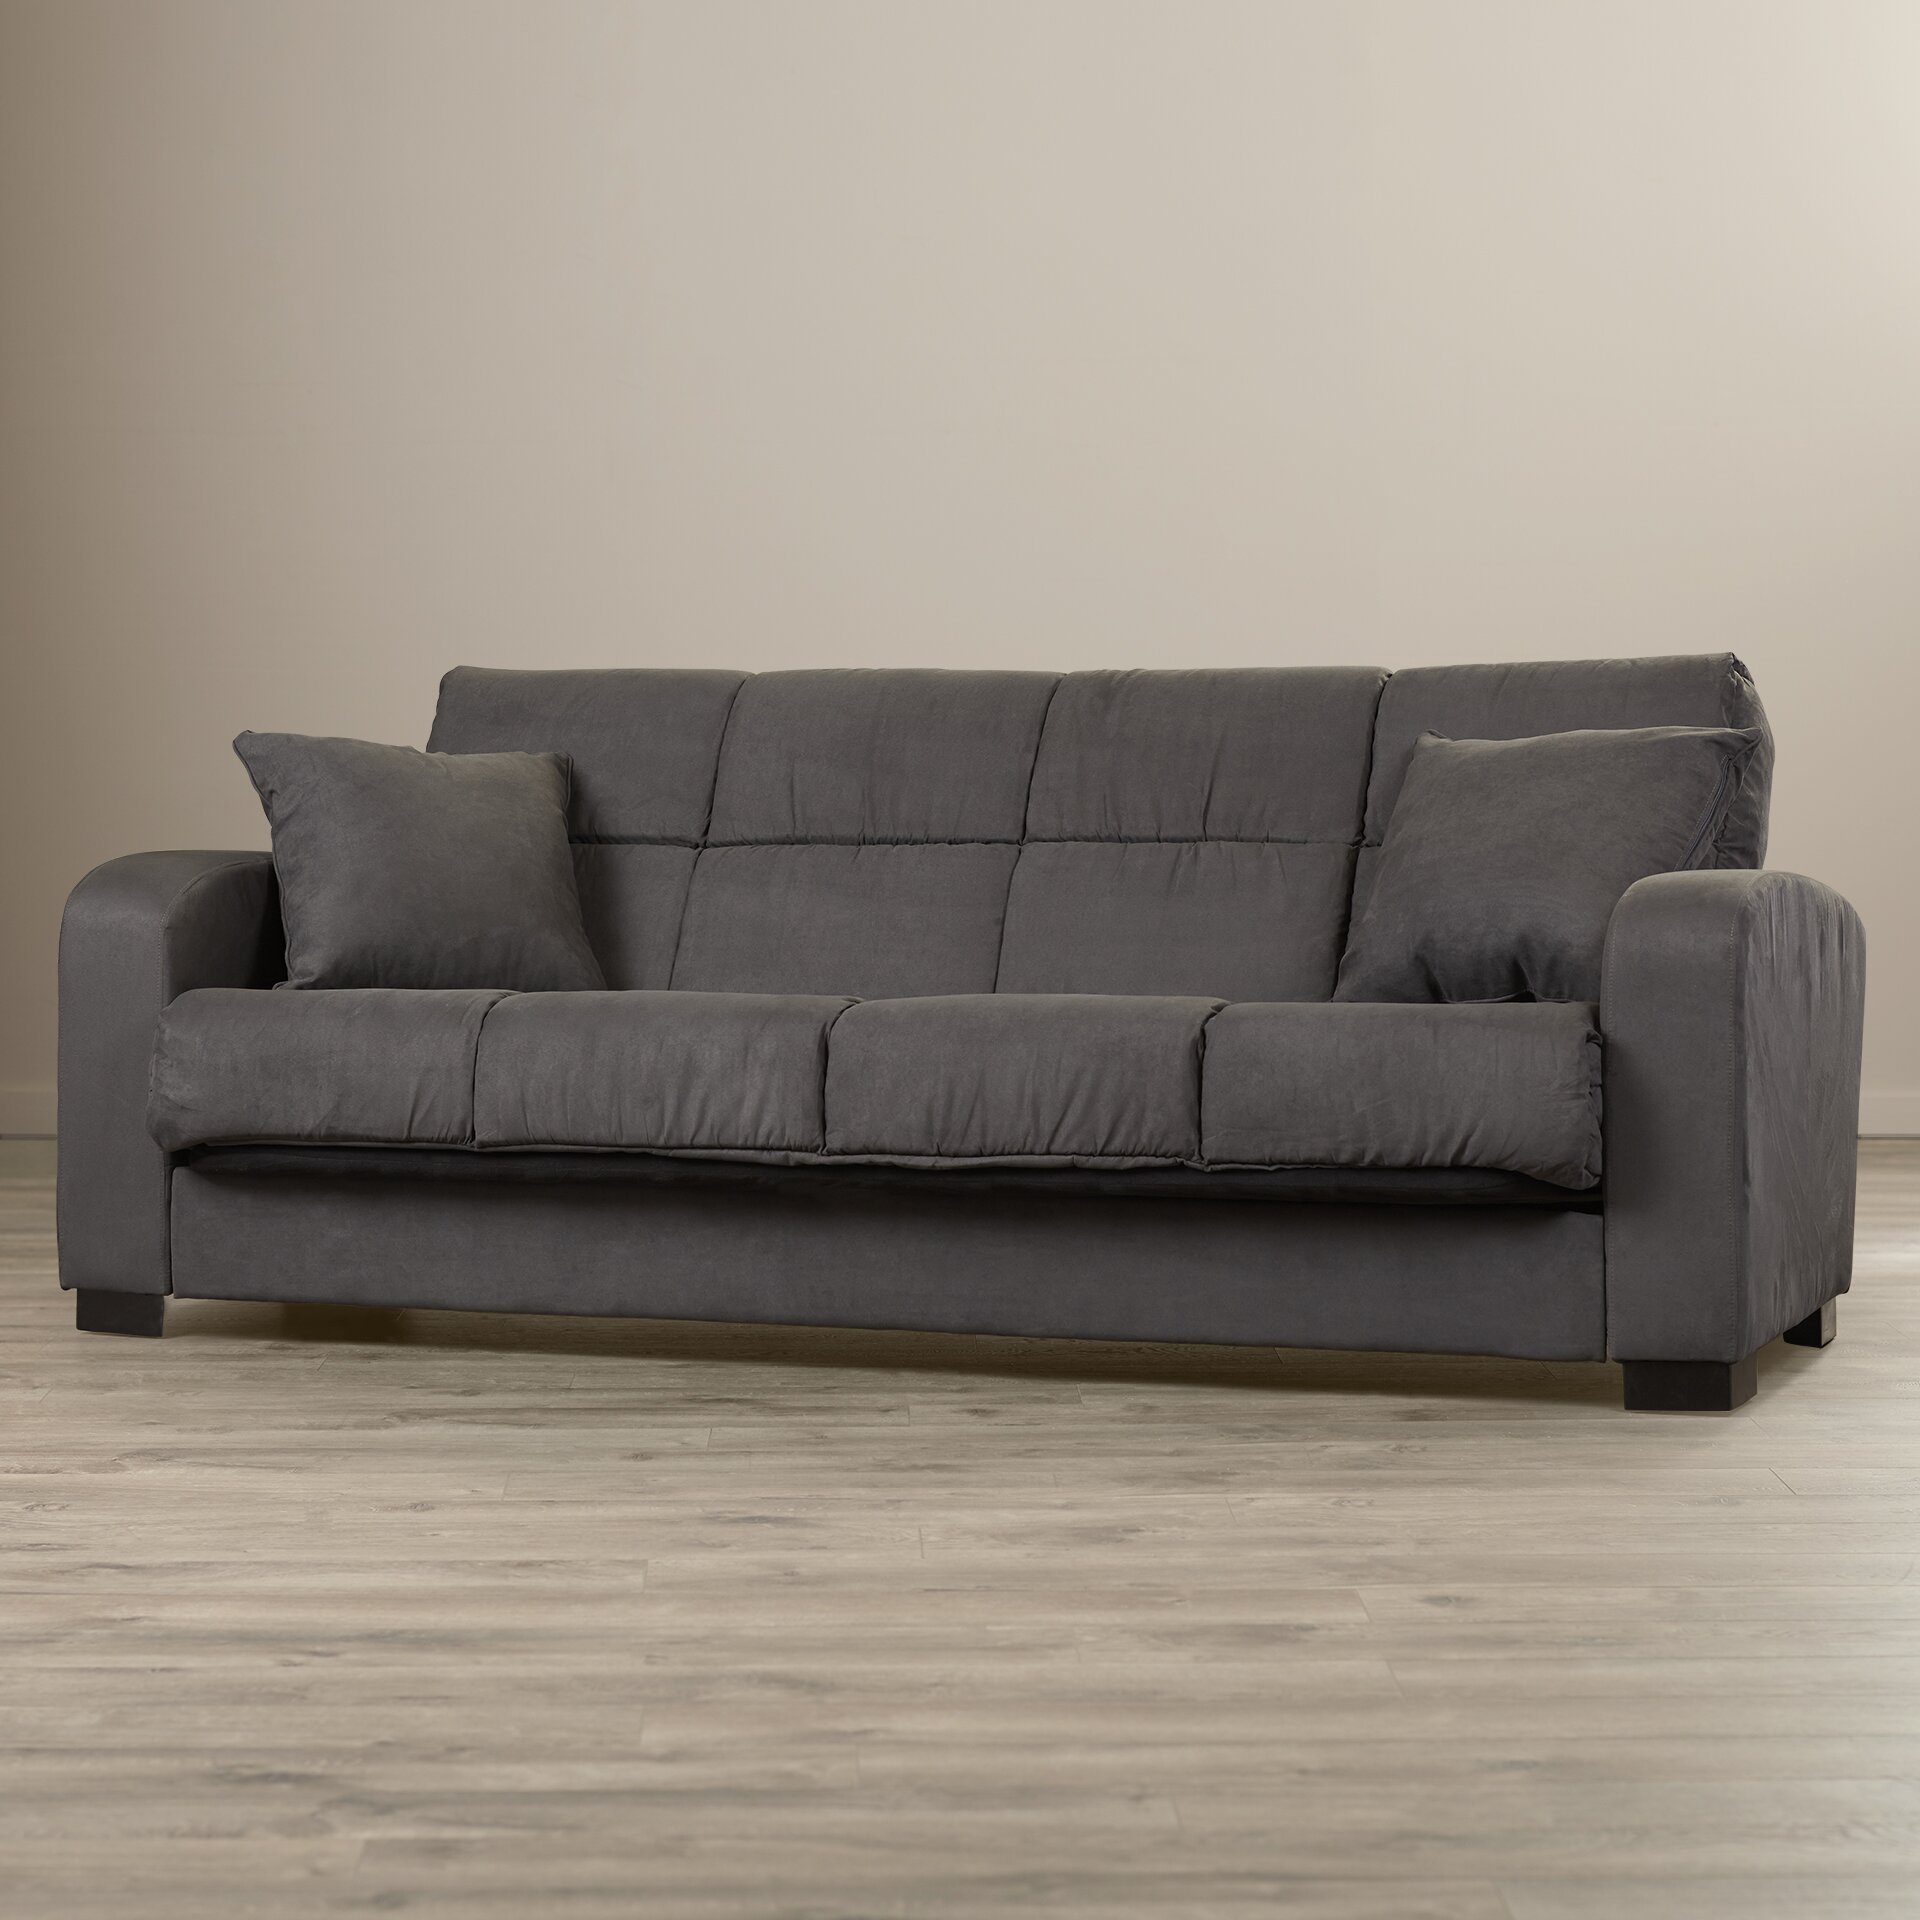 Dillards Recliners: Dillards Furniture Sofa Sleepers Dillards Furniture Sofas